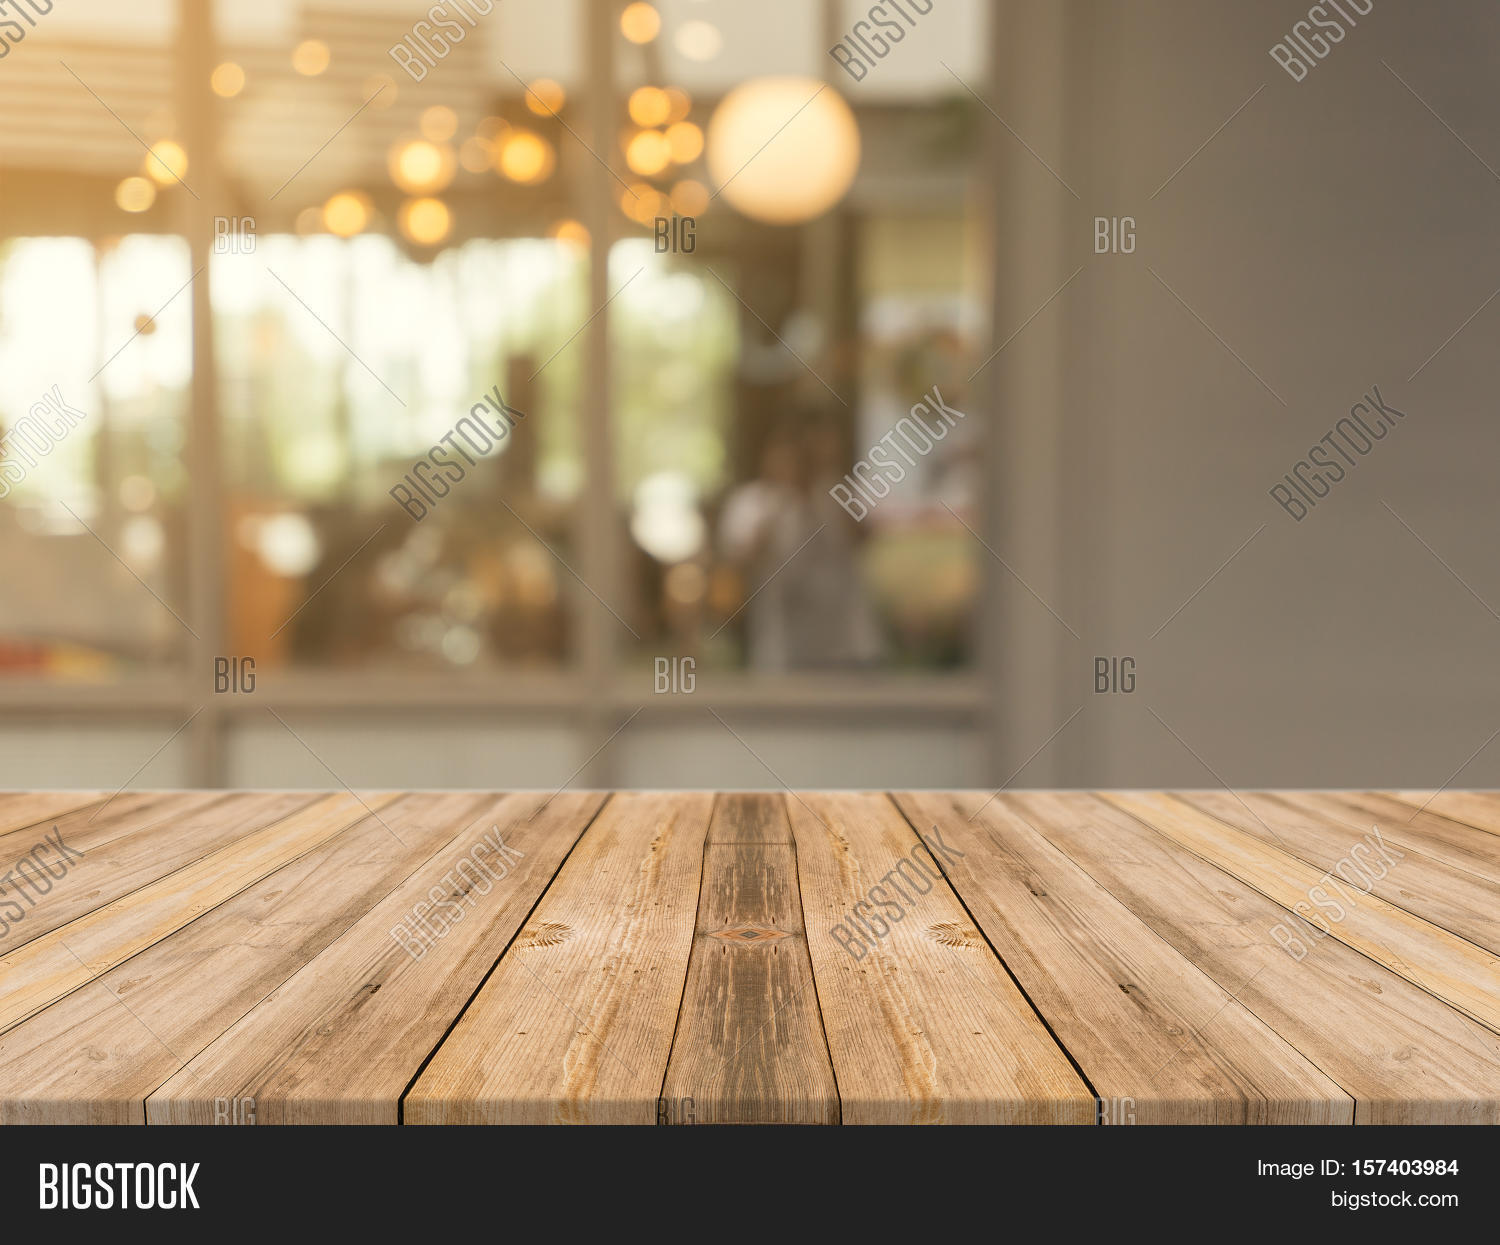 Design For A Small Kitchen Wooden Board Empty Image Amp Photo Free Trial Bigstock